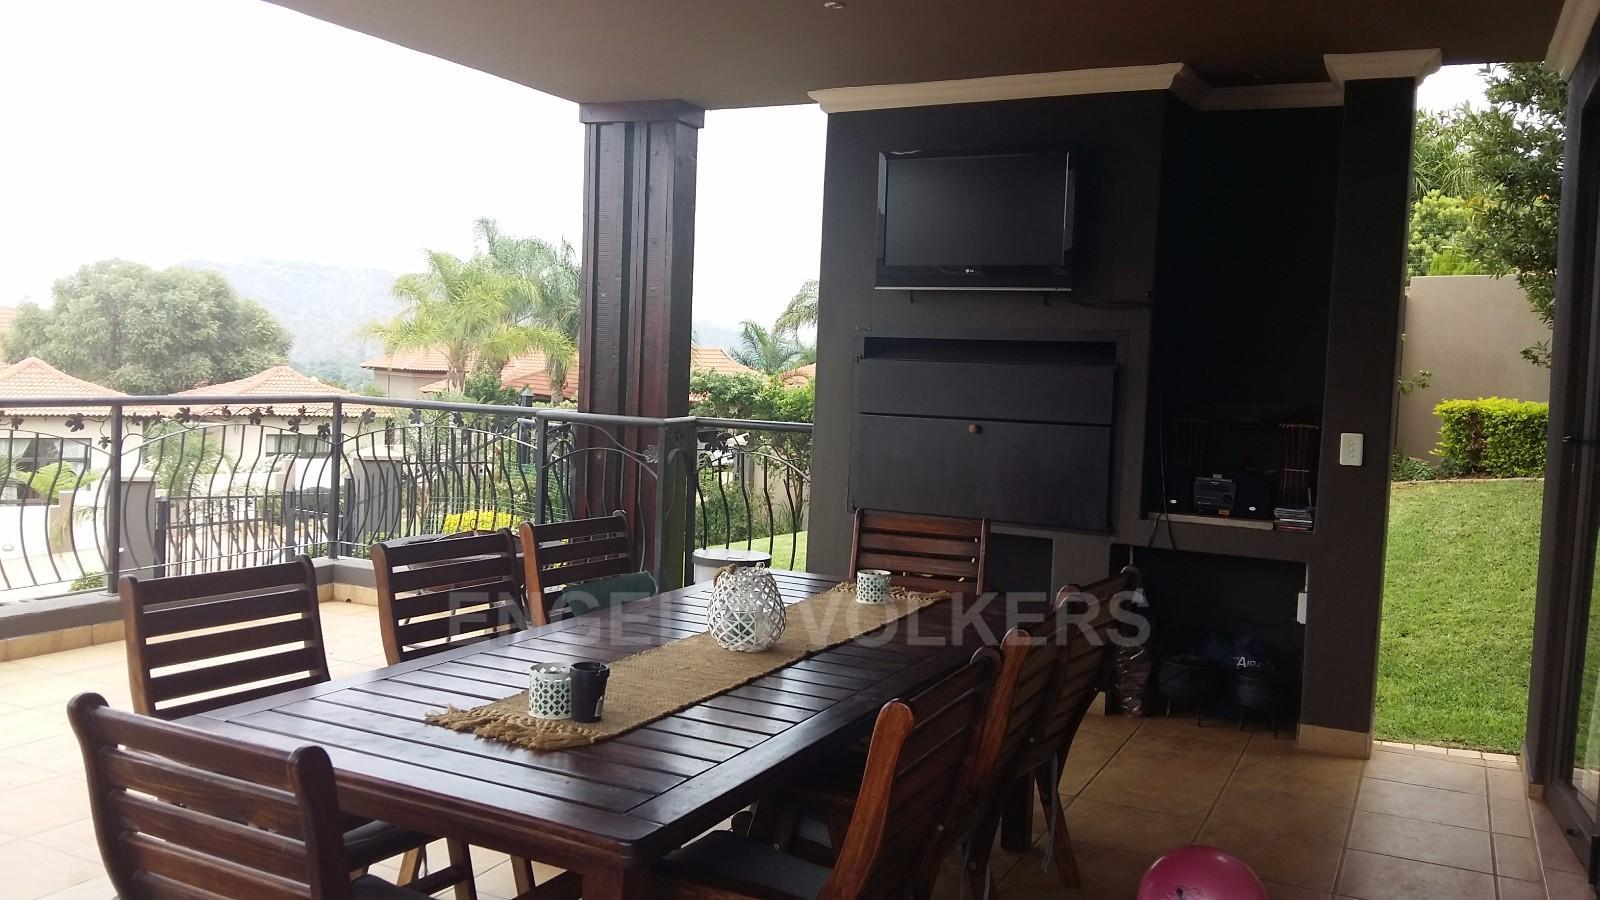 House in Birdwood Estate - Covered_patio_with_braai_and_TV.jpg